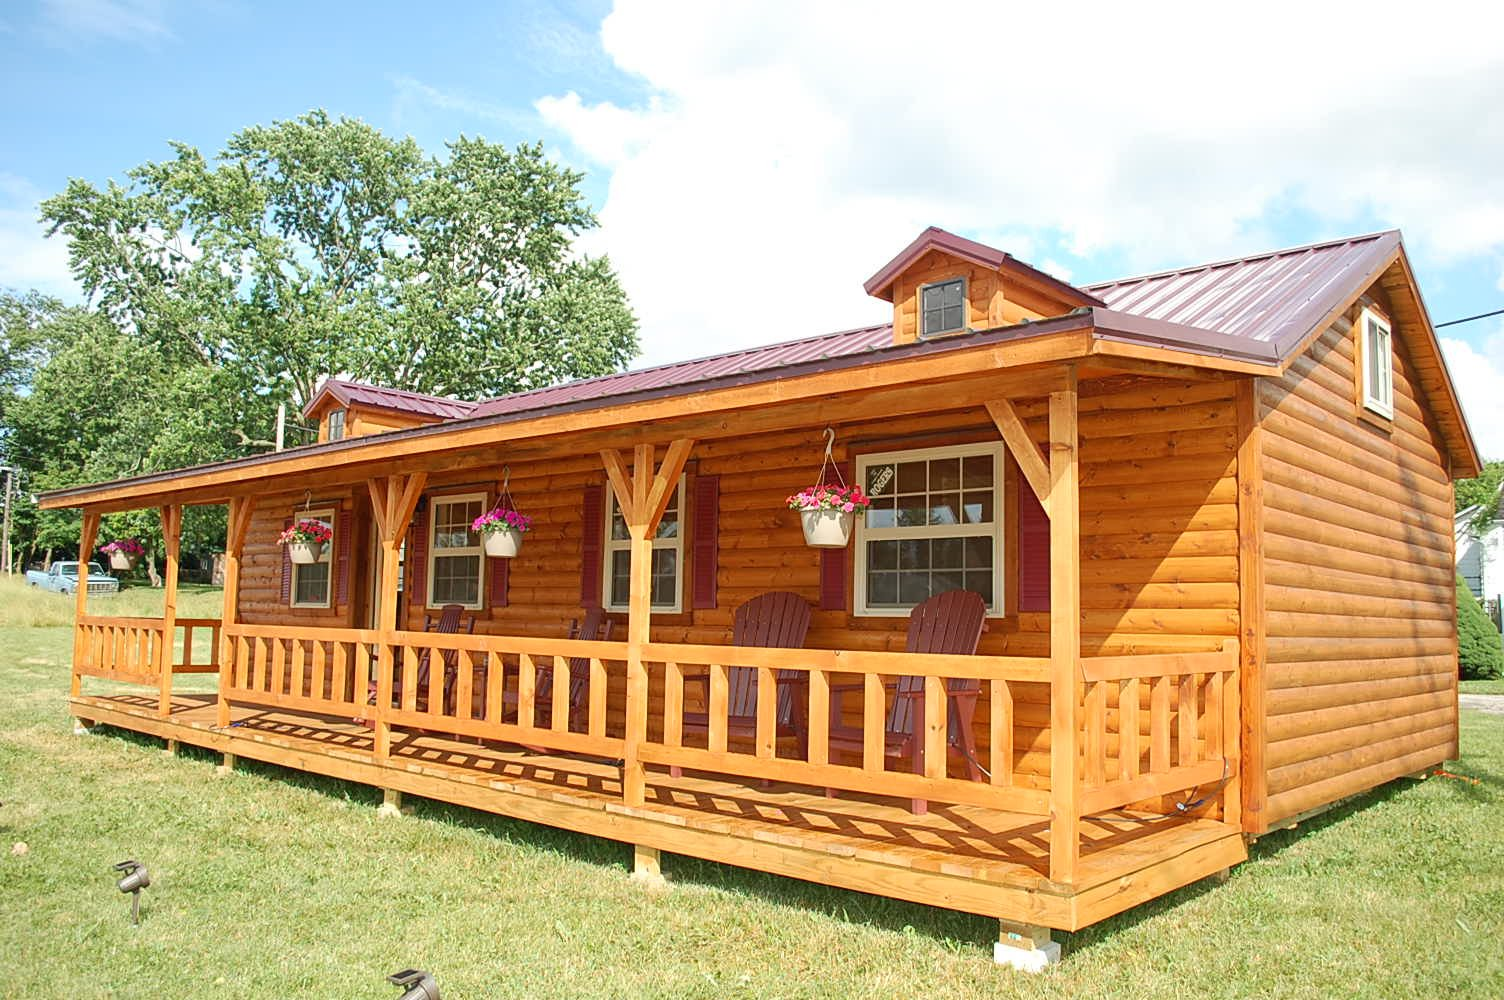 Log cabin kits 10 of the best on the market for 1000 sq ft cabin kits